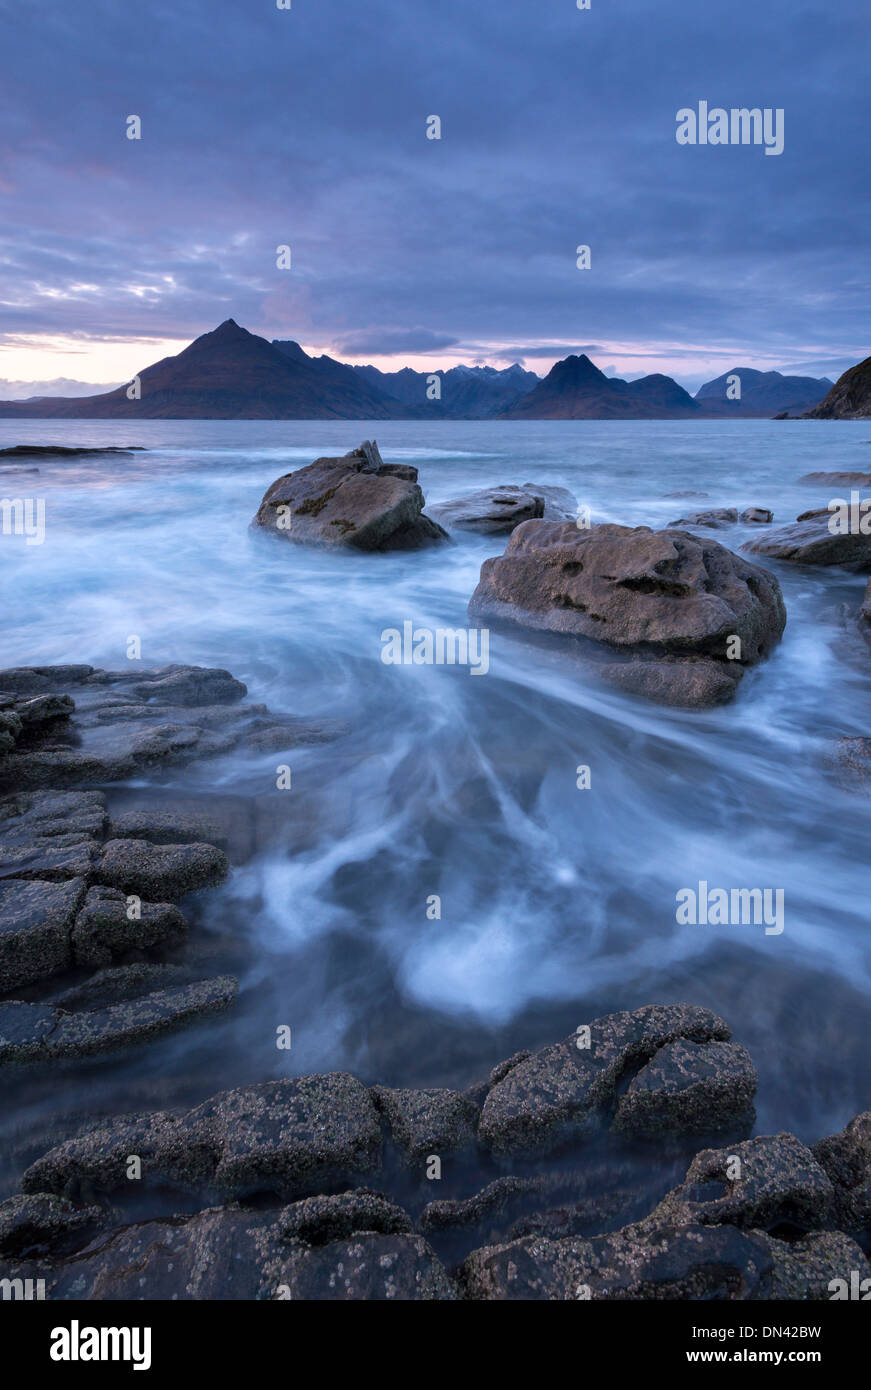 The Black Cuillin mountains from the rocky shores of Elgol, Isle of Skye, Scotland. Winter (December) 2013. - Stock Image